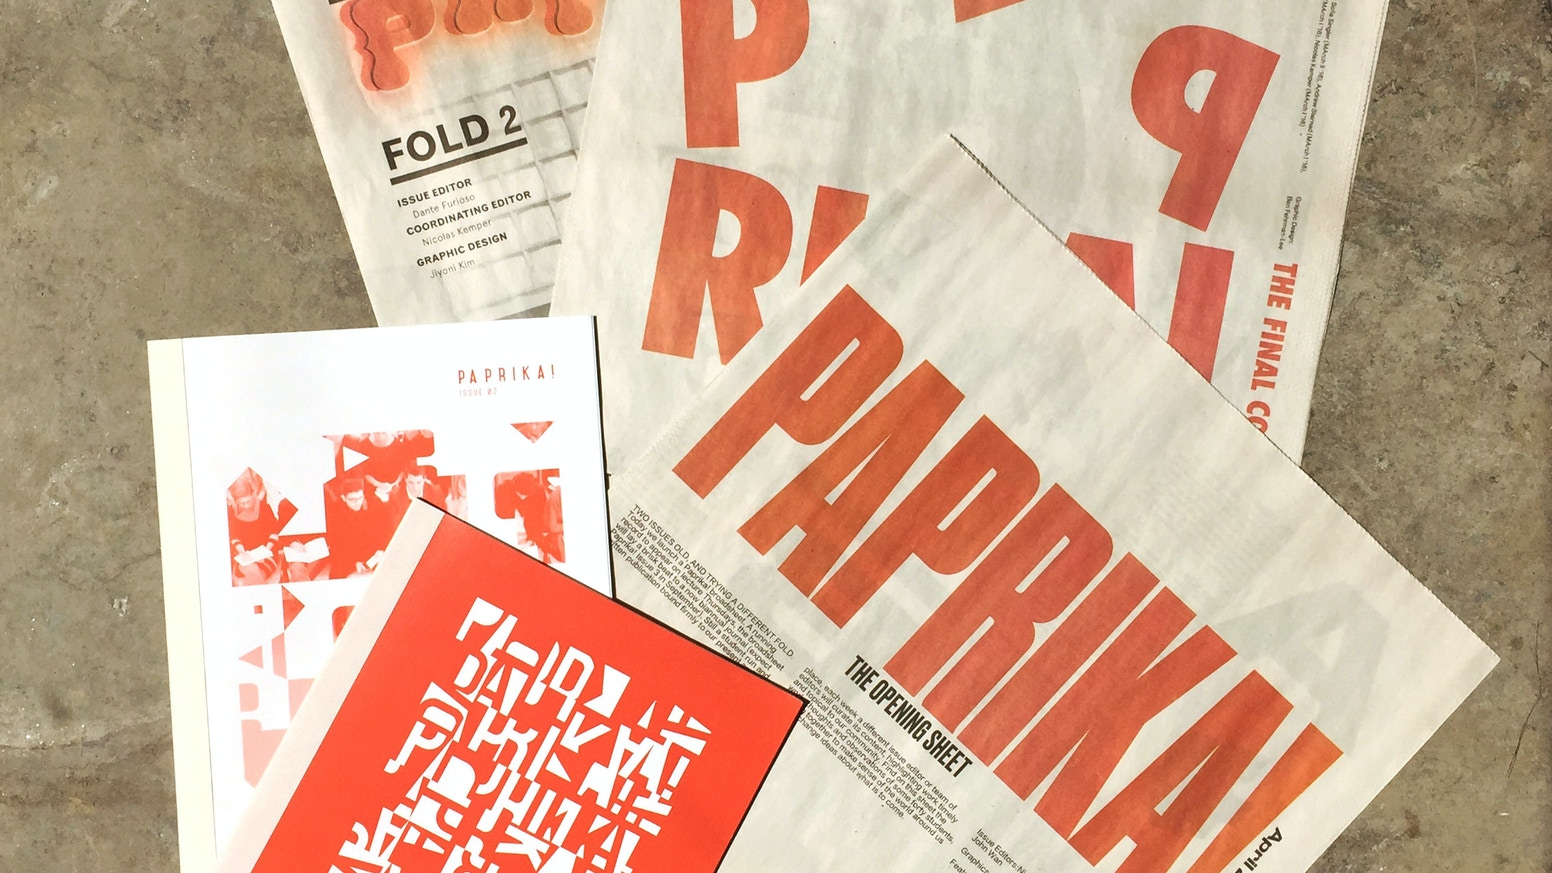 Paprika! An architecture student weekly by Paprika